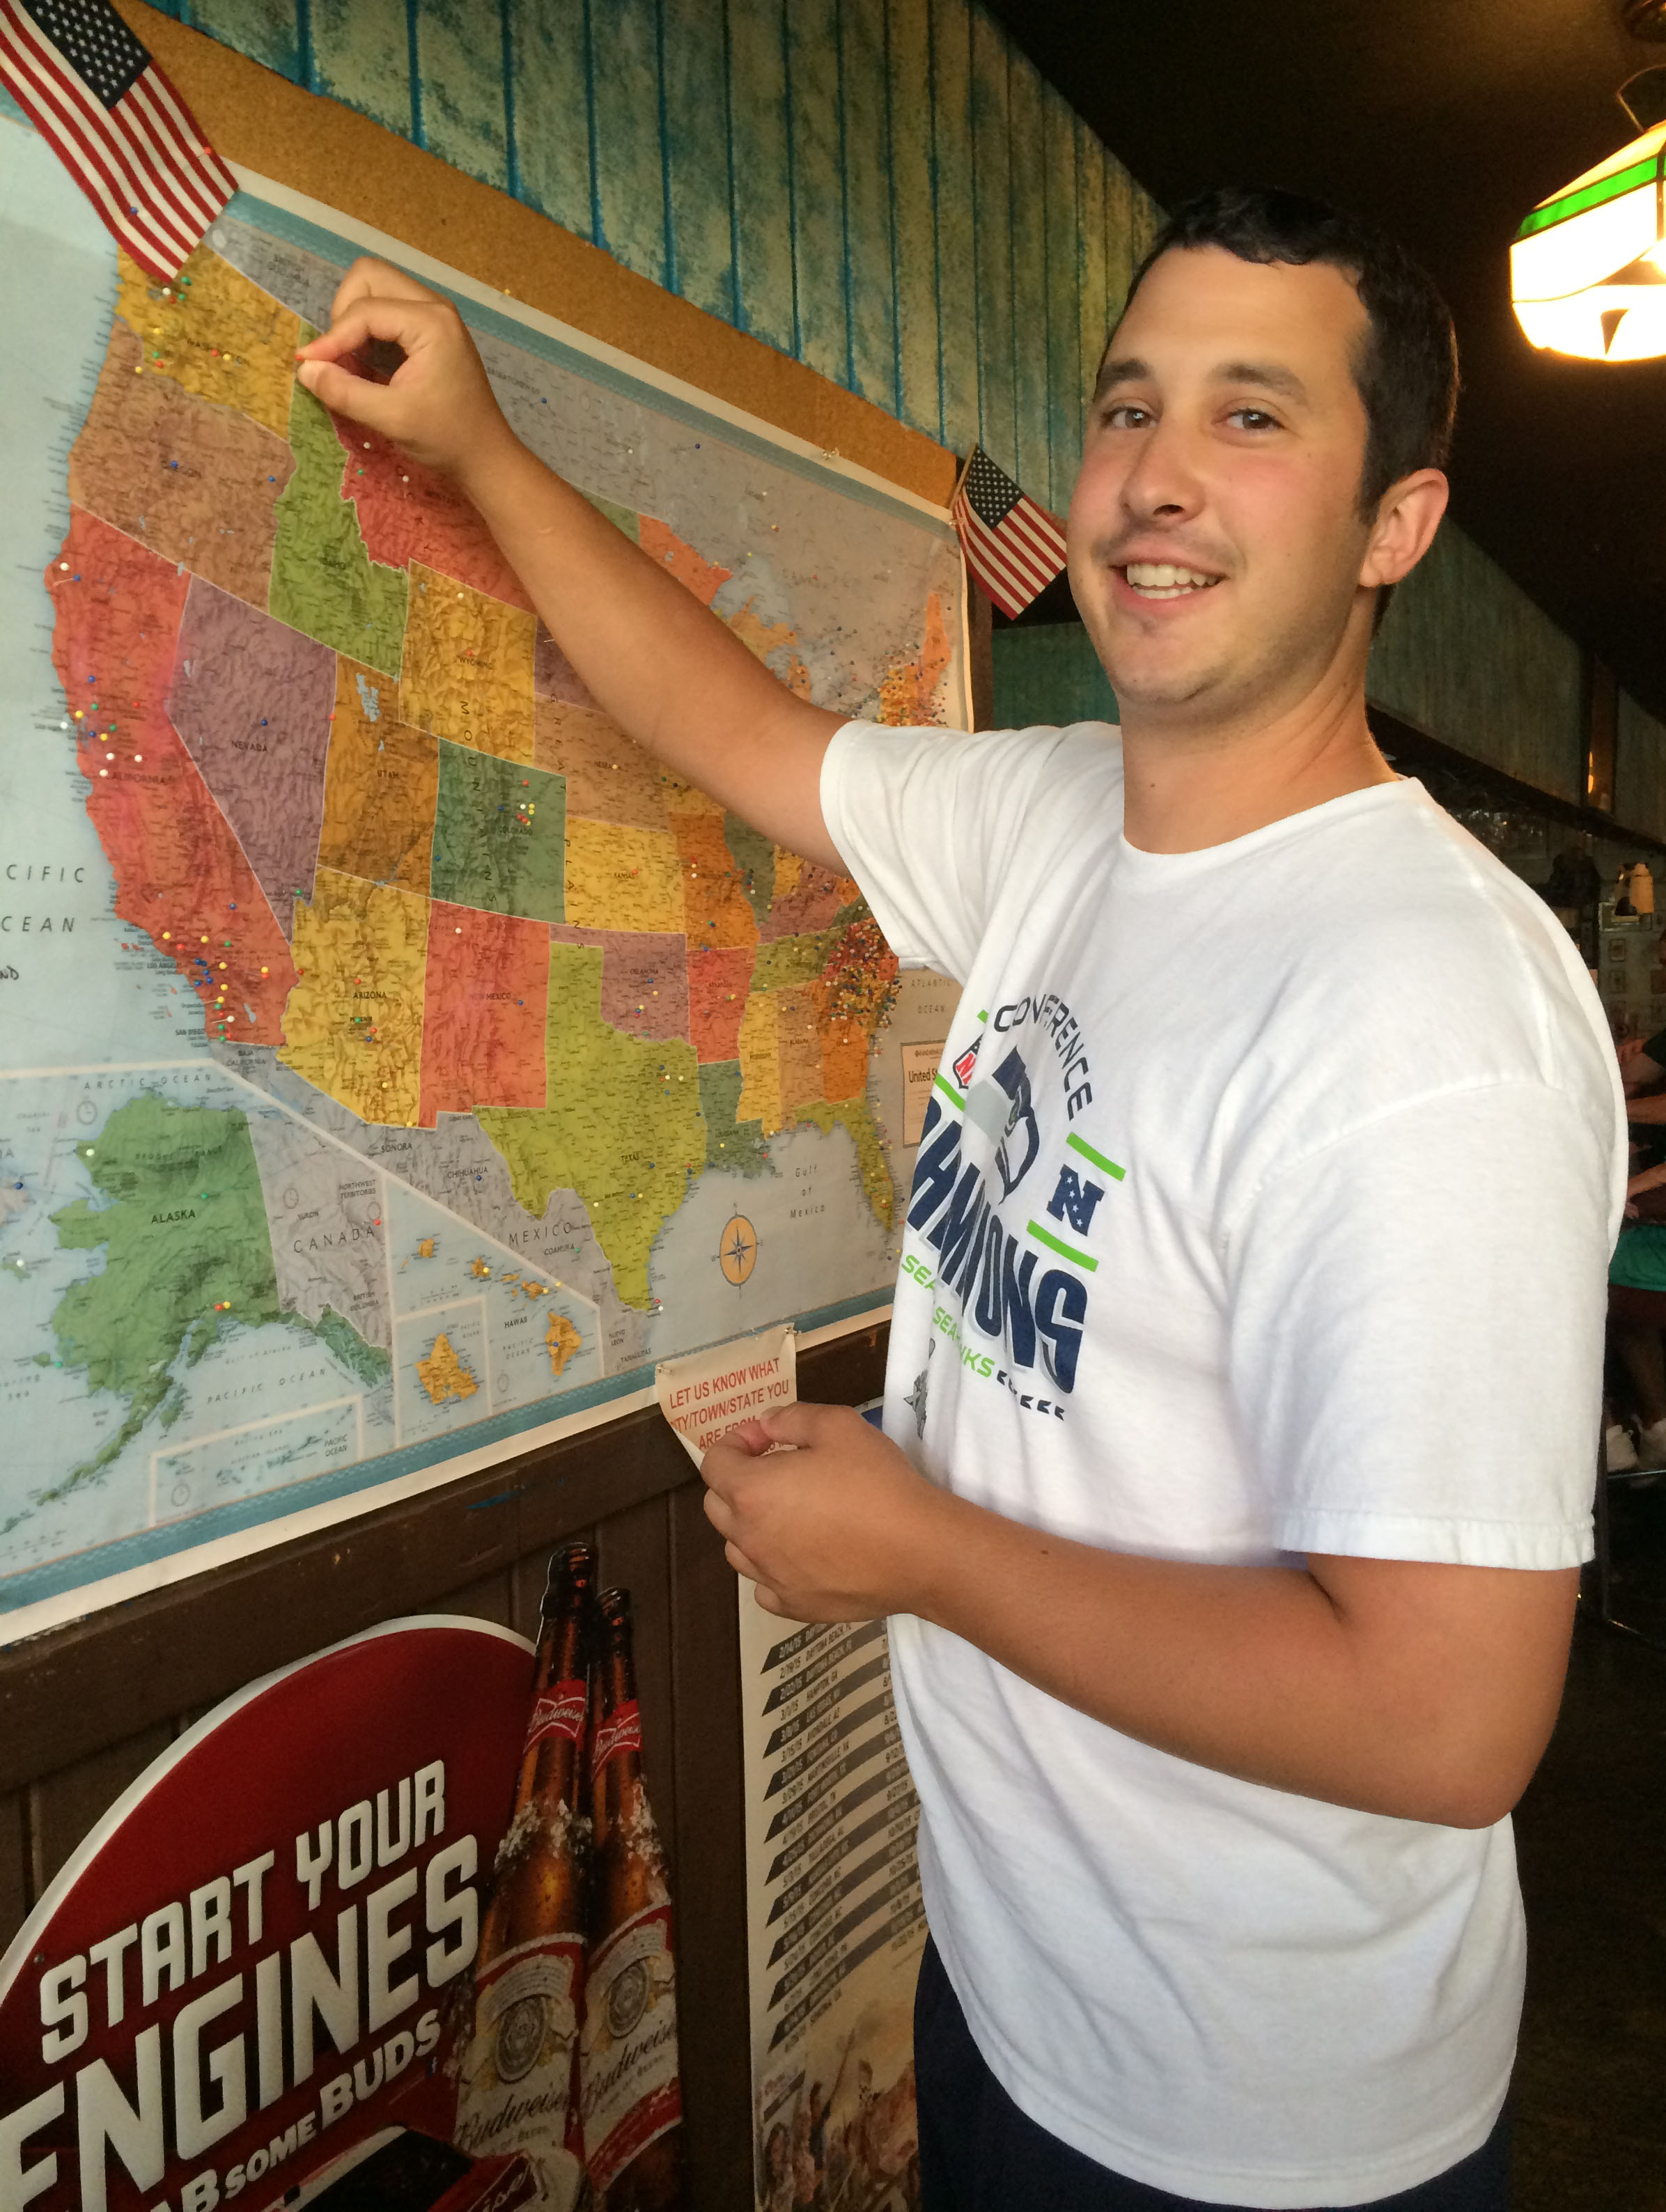 Glen pinned his hometown on the big map in the bar.